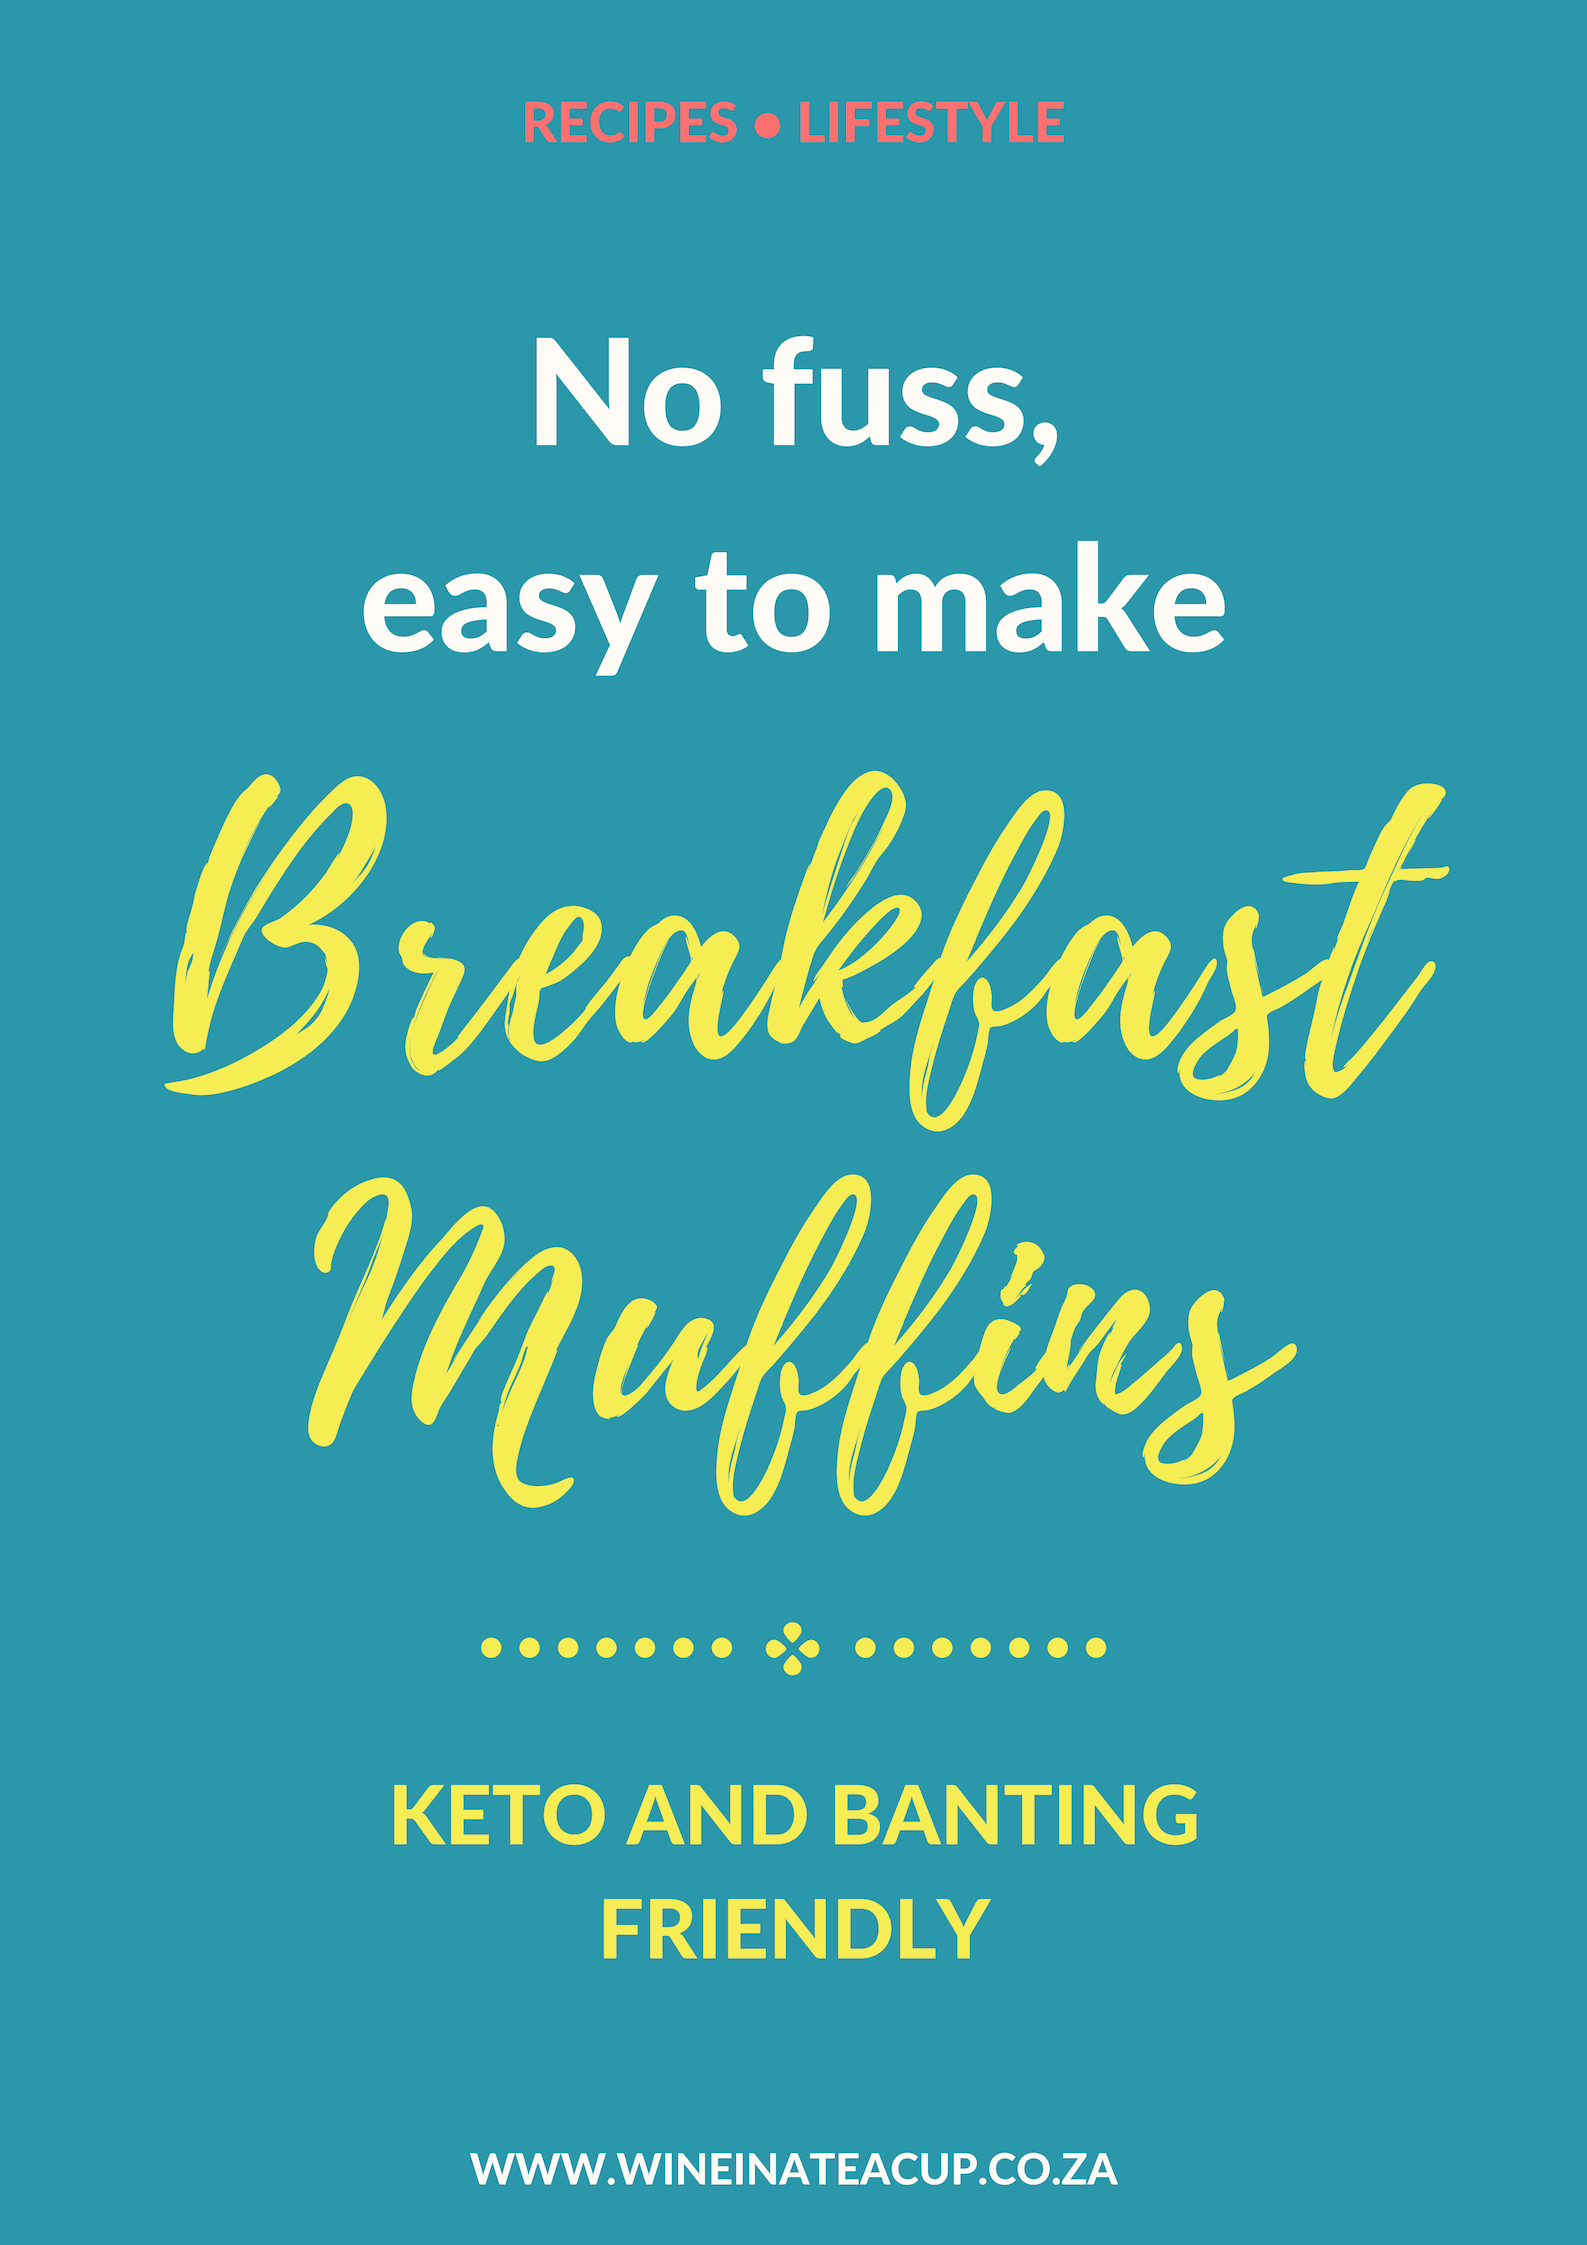 Quick and easy keto/banting friendly breakfast muffins. #ketorecipes #lowcarbrecipes #breakfast